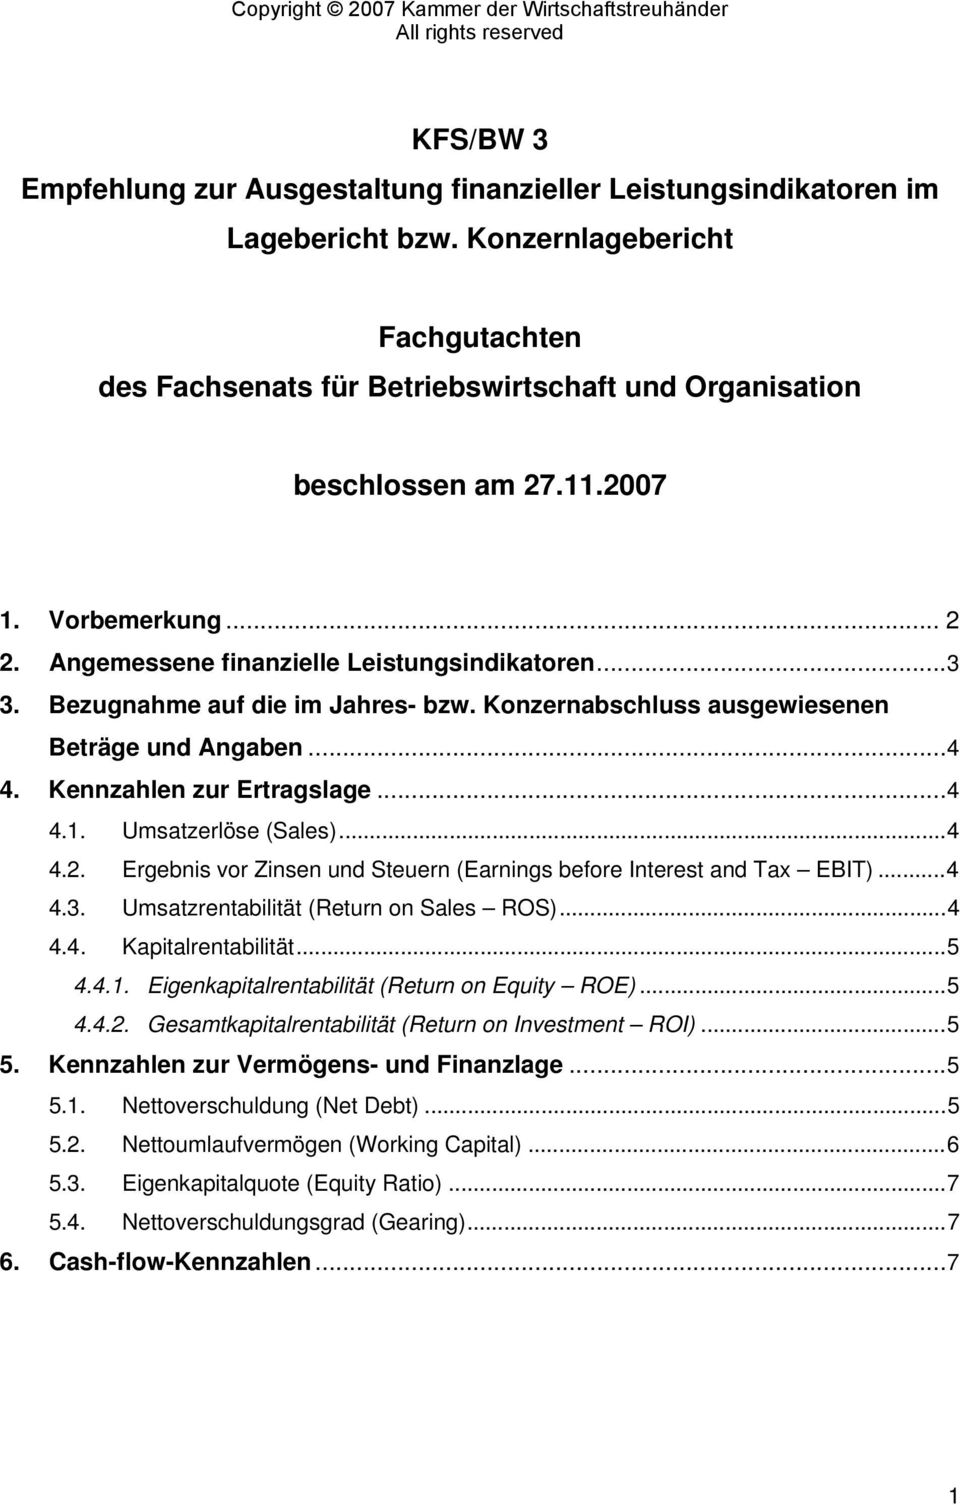 Kennzahlen zur Ertragslage...4 4.1. Umsatzerlöse (Sales)...4 4.2. Ergebnis vor Zinsen und Steuern (Earnings before Interest and Tax EBIT)...4 4.3. Umsatzrentabilität (Return on Sales ROS)...4 4.4. Kapitalrentabilität.